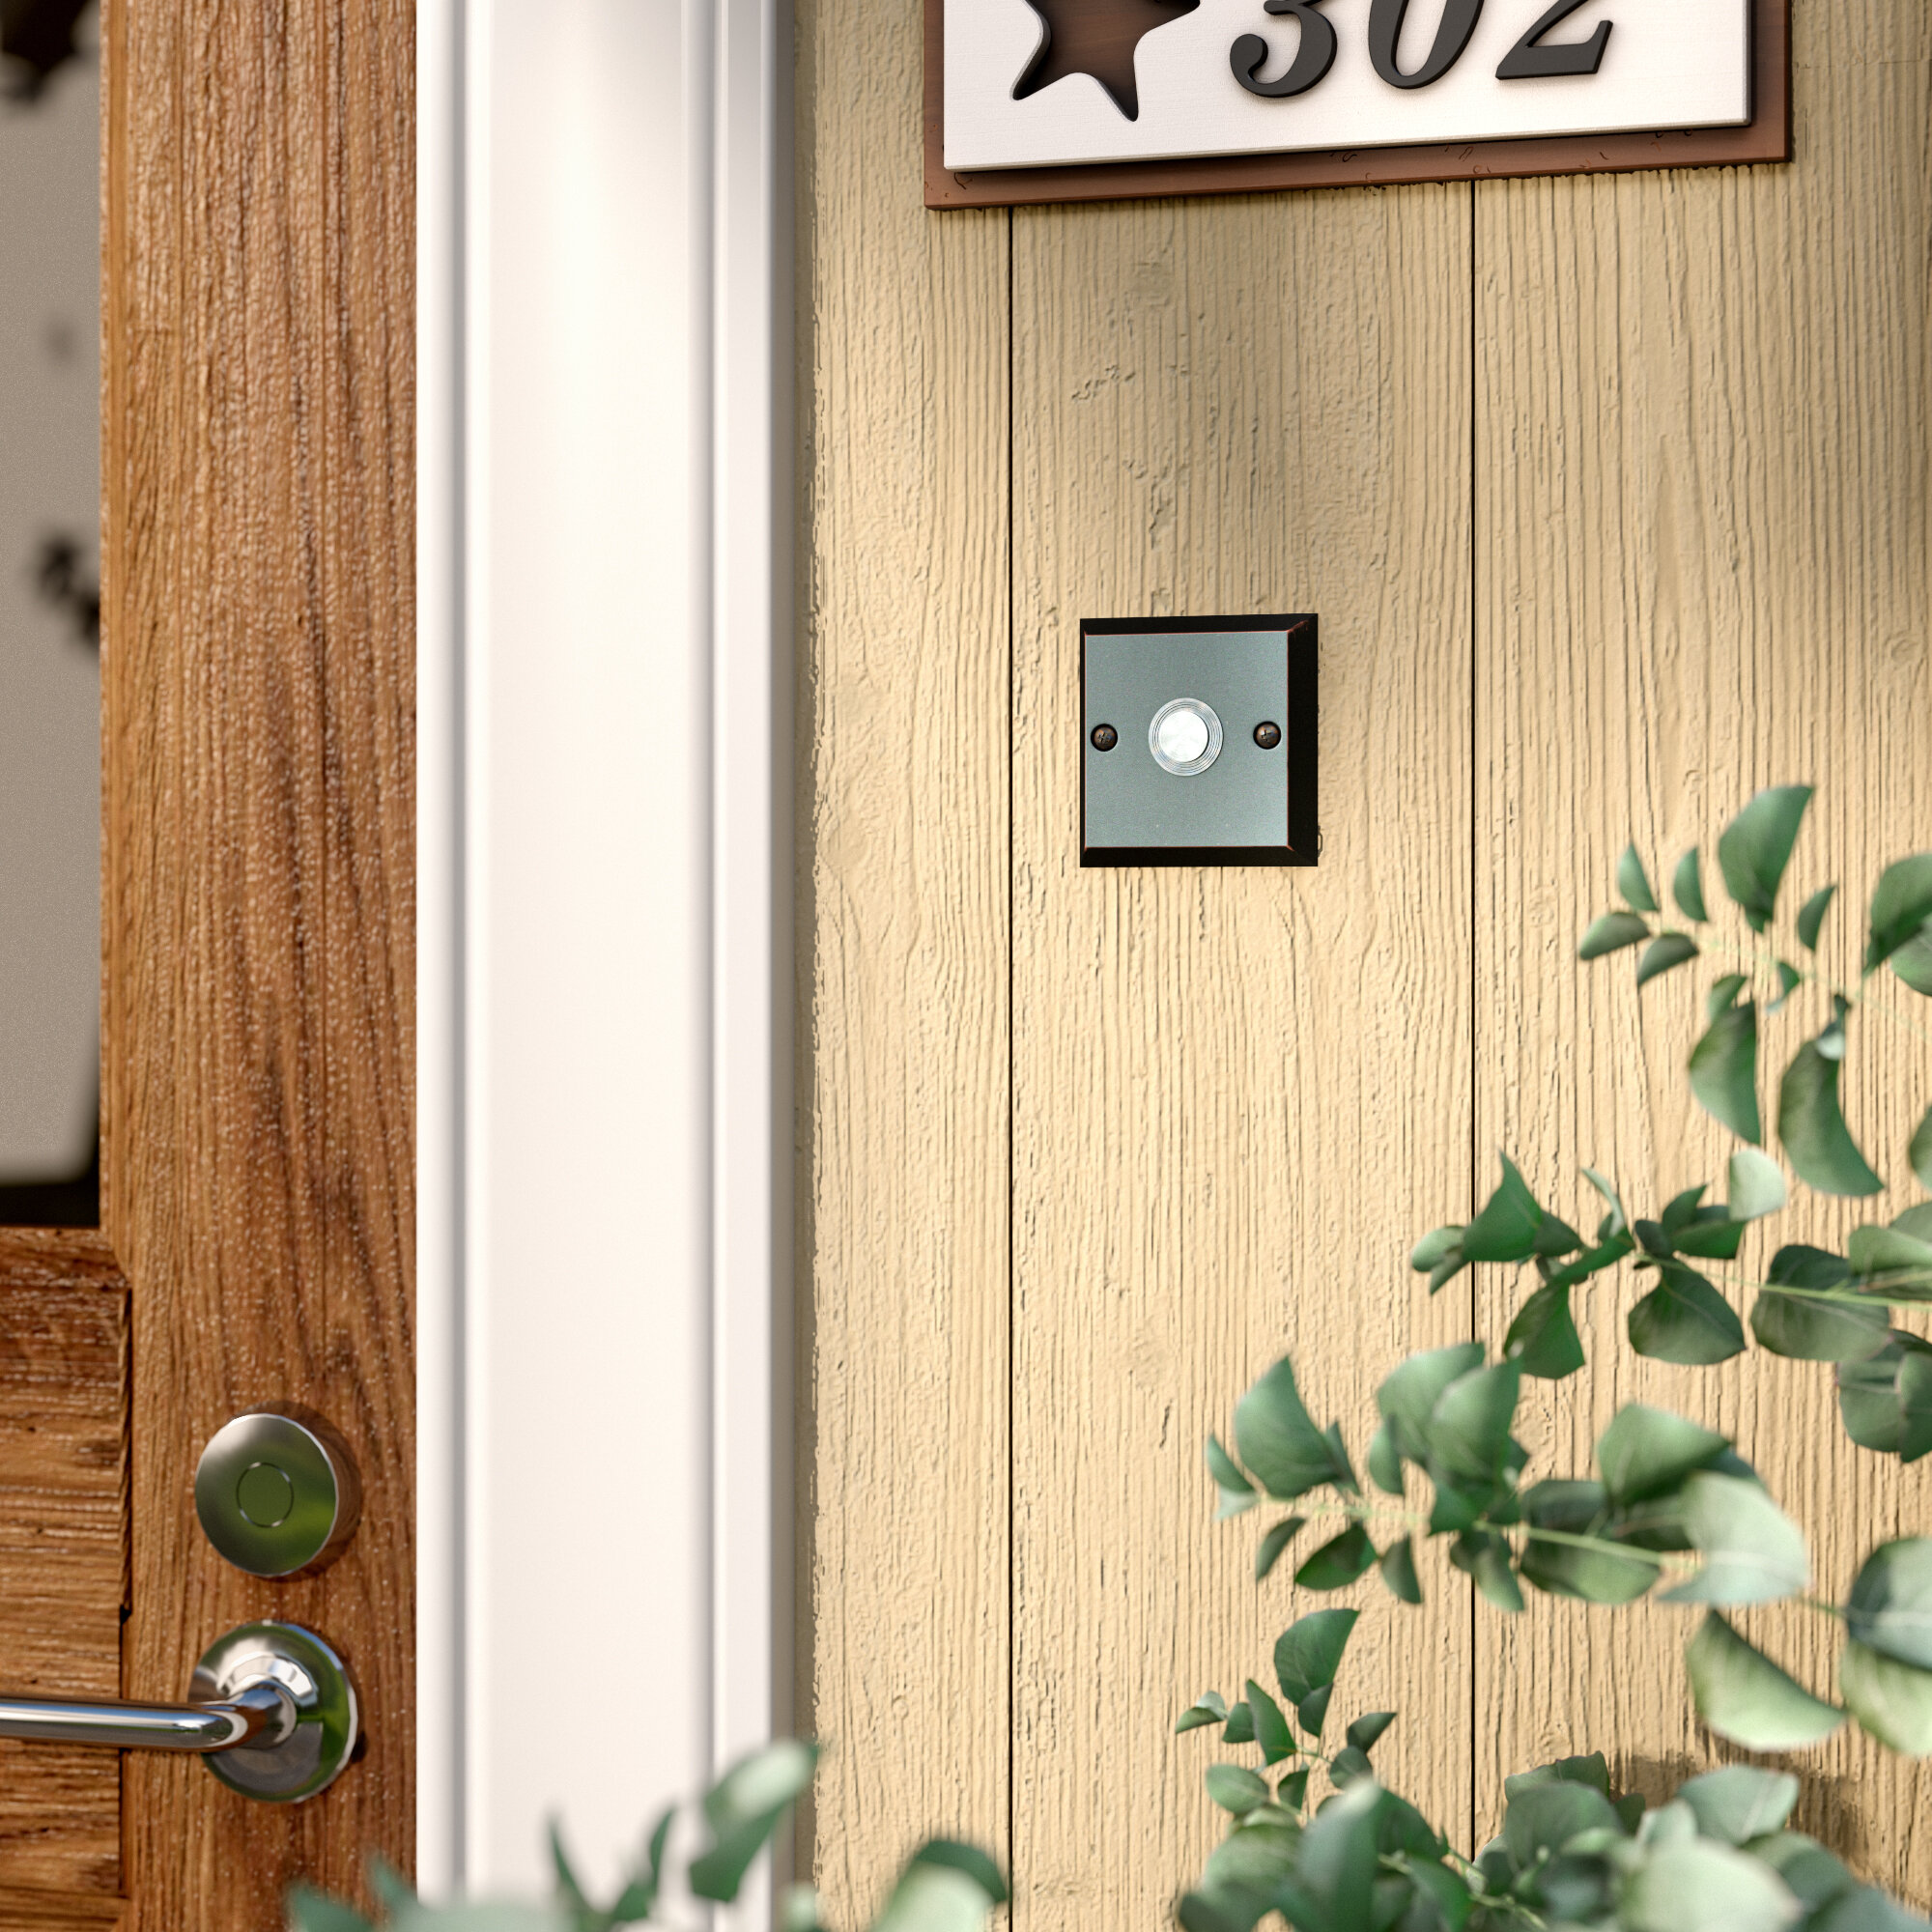 Picture of: Red Barrel Studio Forged Lighted Doorbell Push Button Wayfair